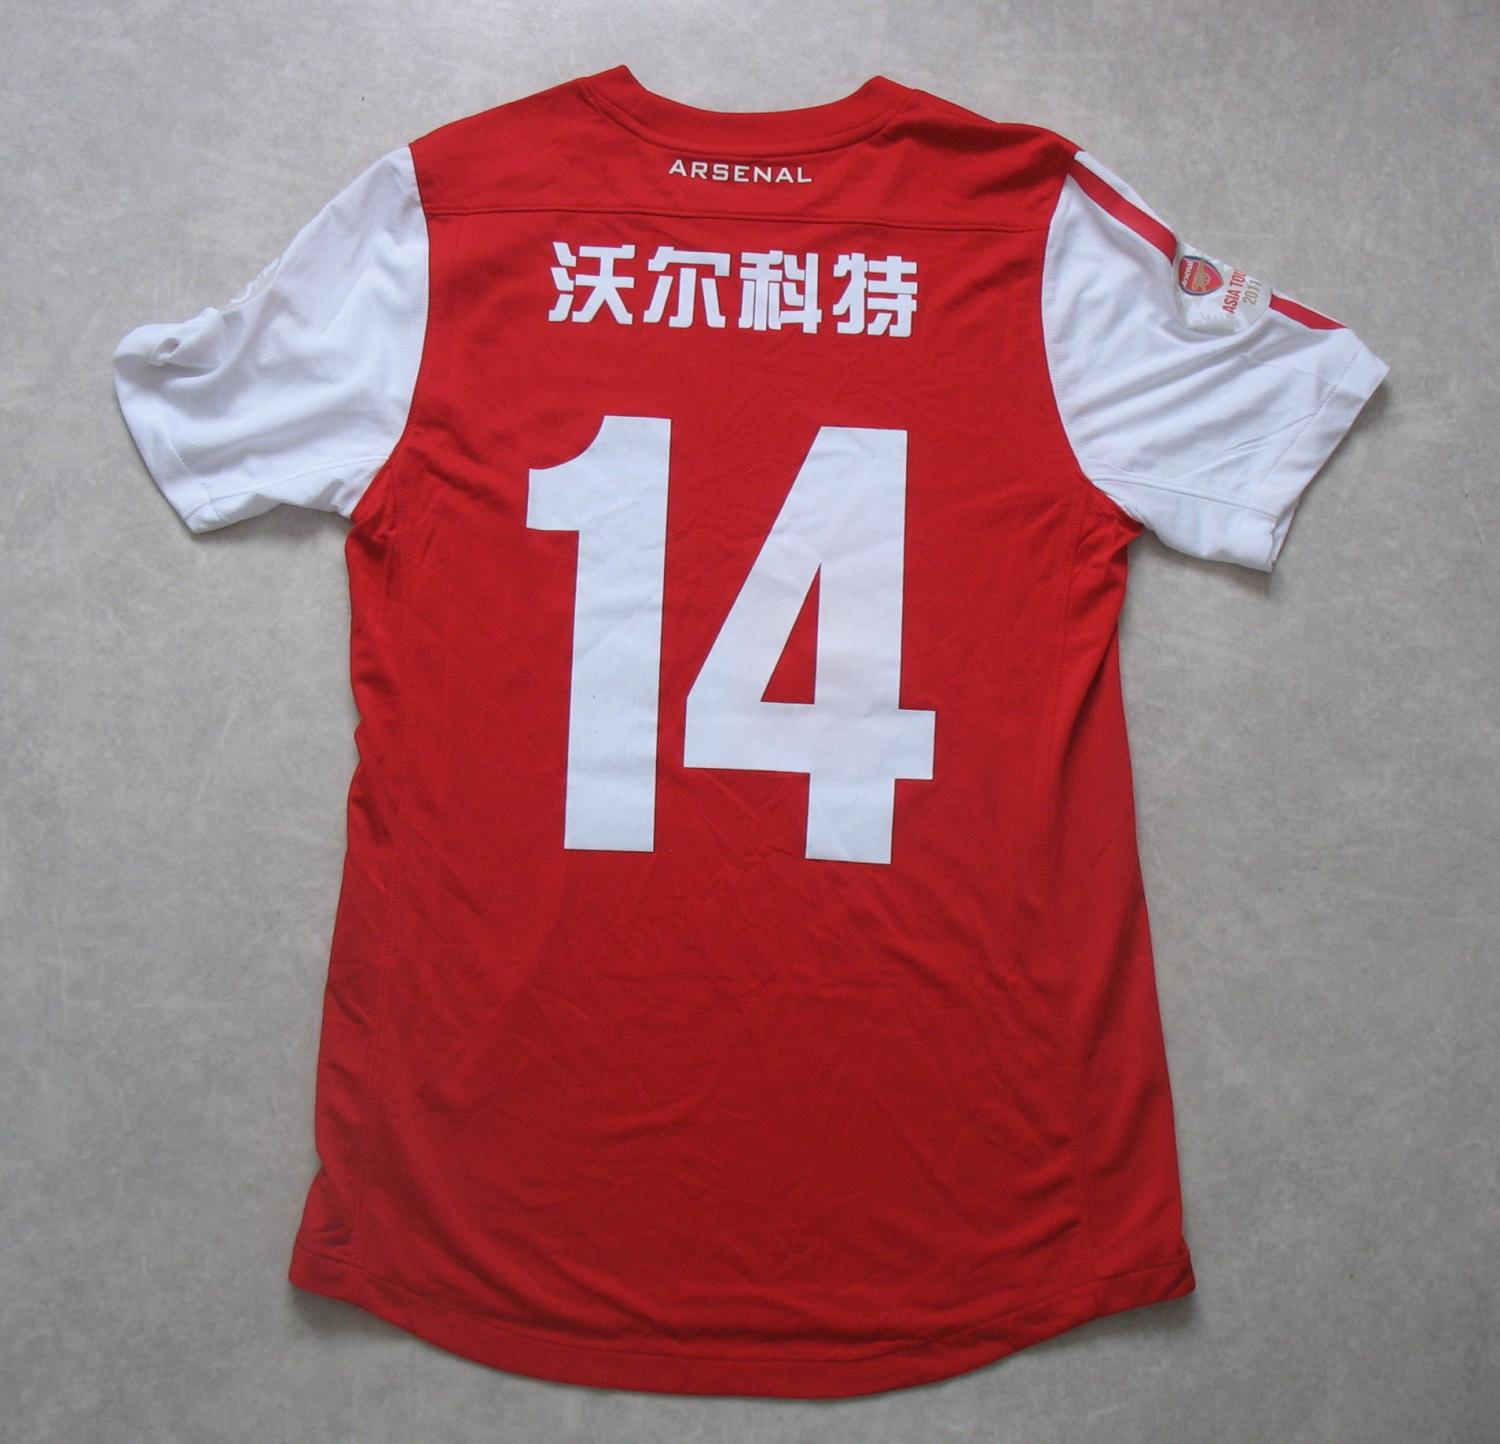 new arrival 90ed4 38e84 Arsenal Home football shirt 2011 - 2012. Sponsored by Emirates